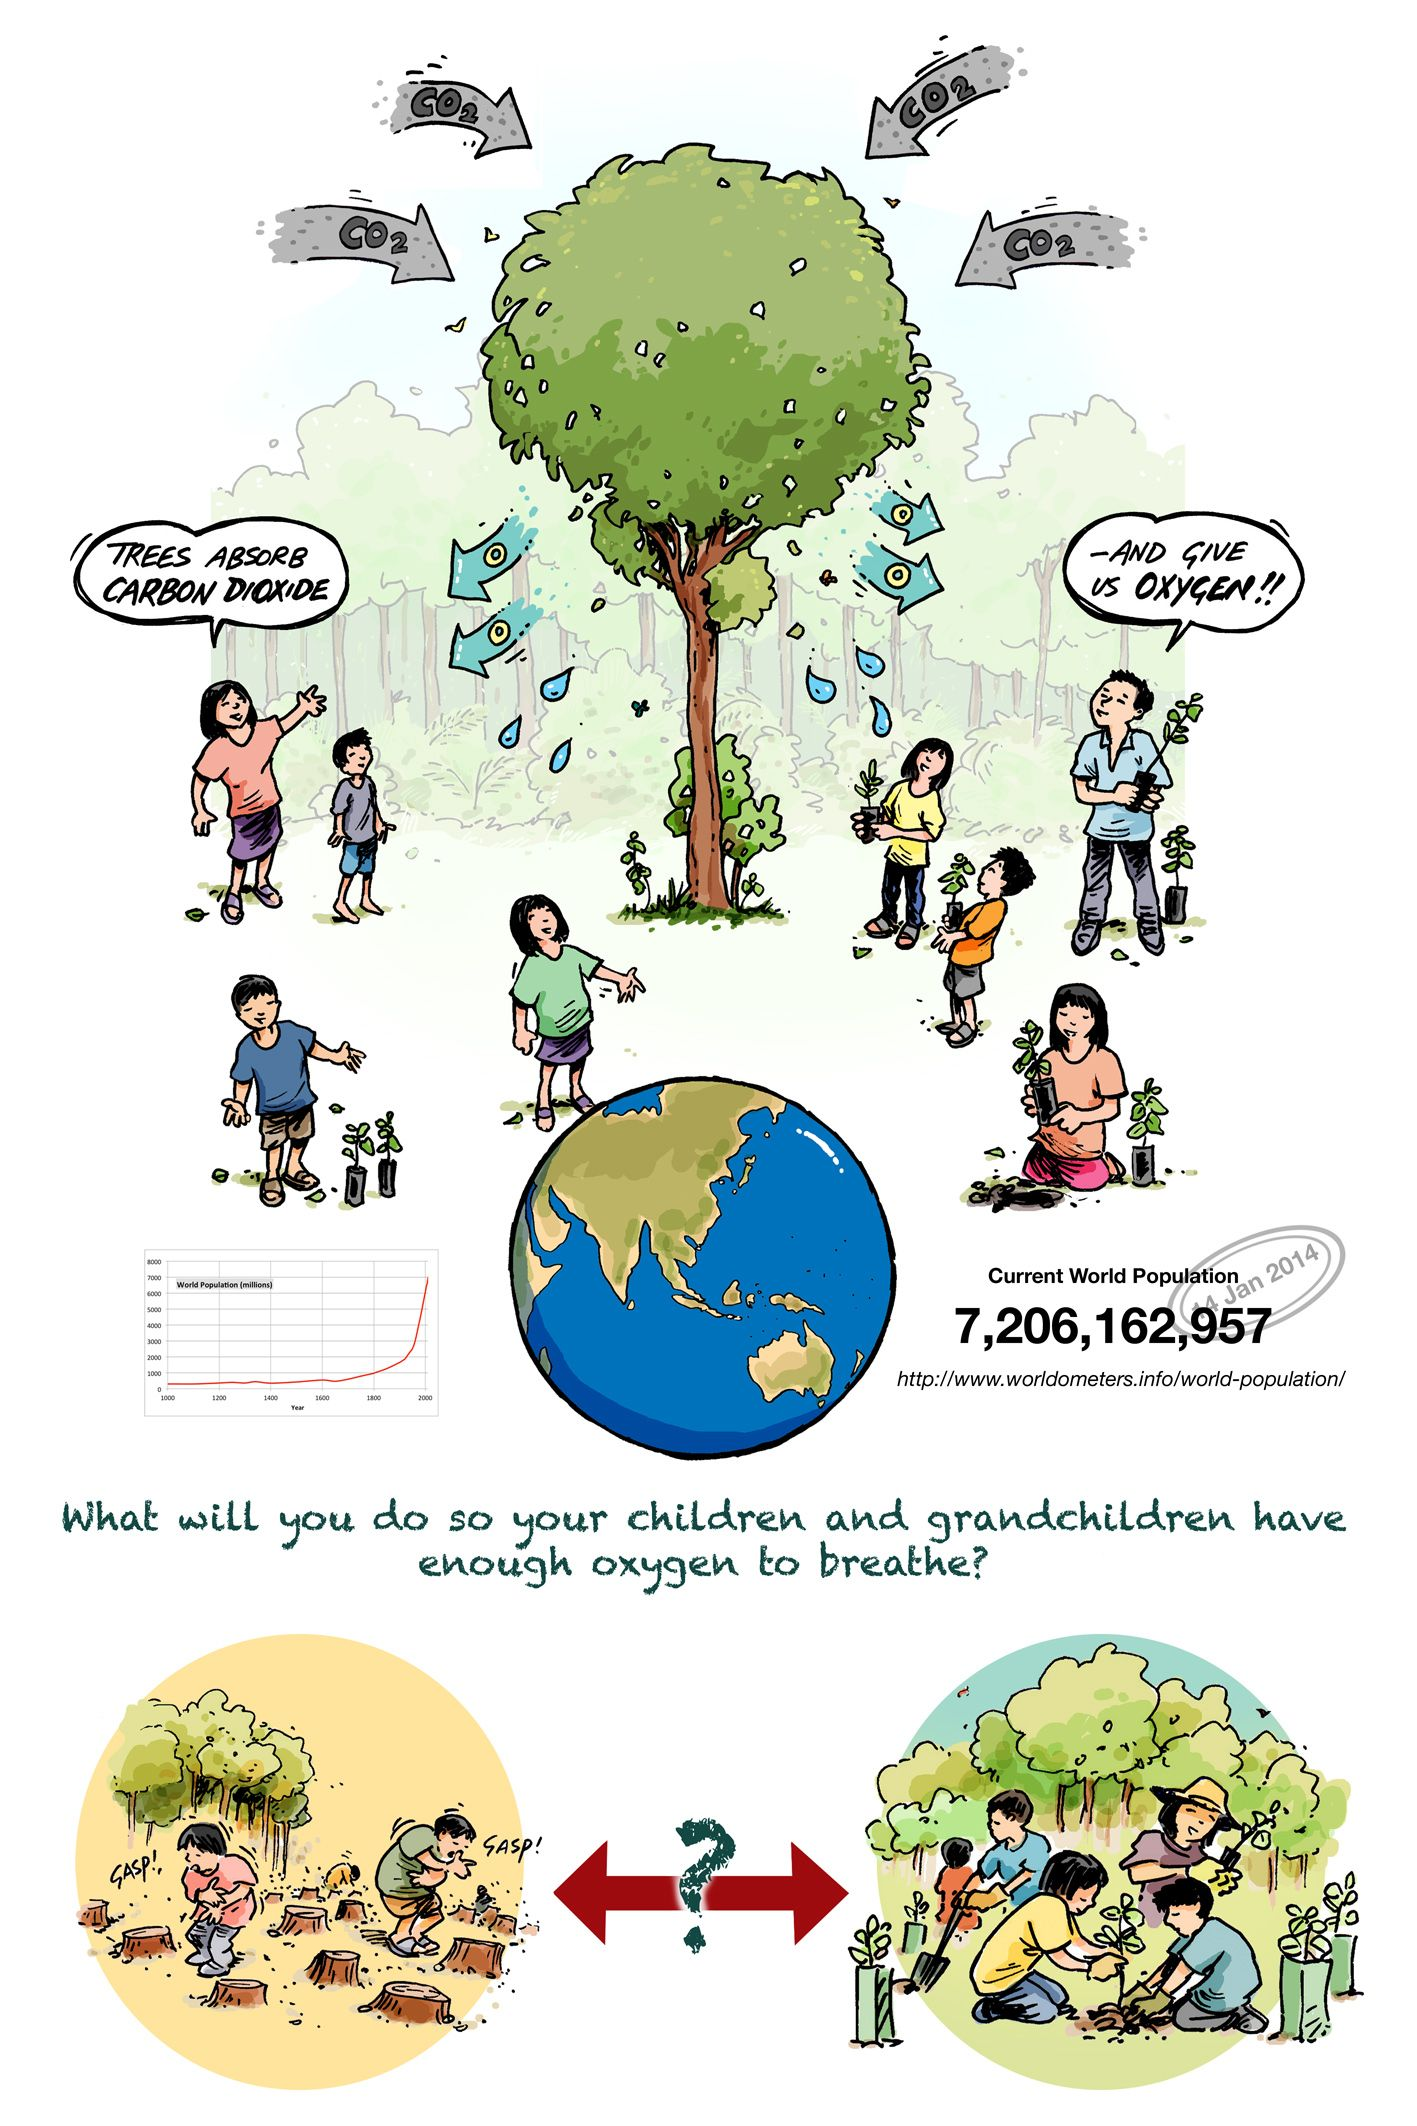 support our goal www aridzoneafforestation org aza aridzoneafforestation safetree afforestation plant trees forests saveearth saveplanet activism  [ 1417 x 2126 Pixel ]